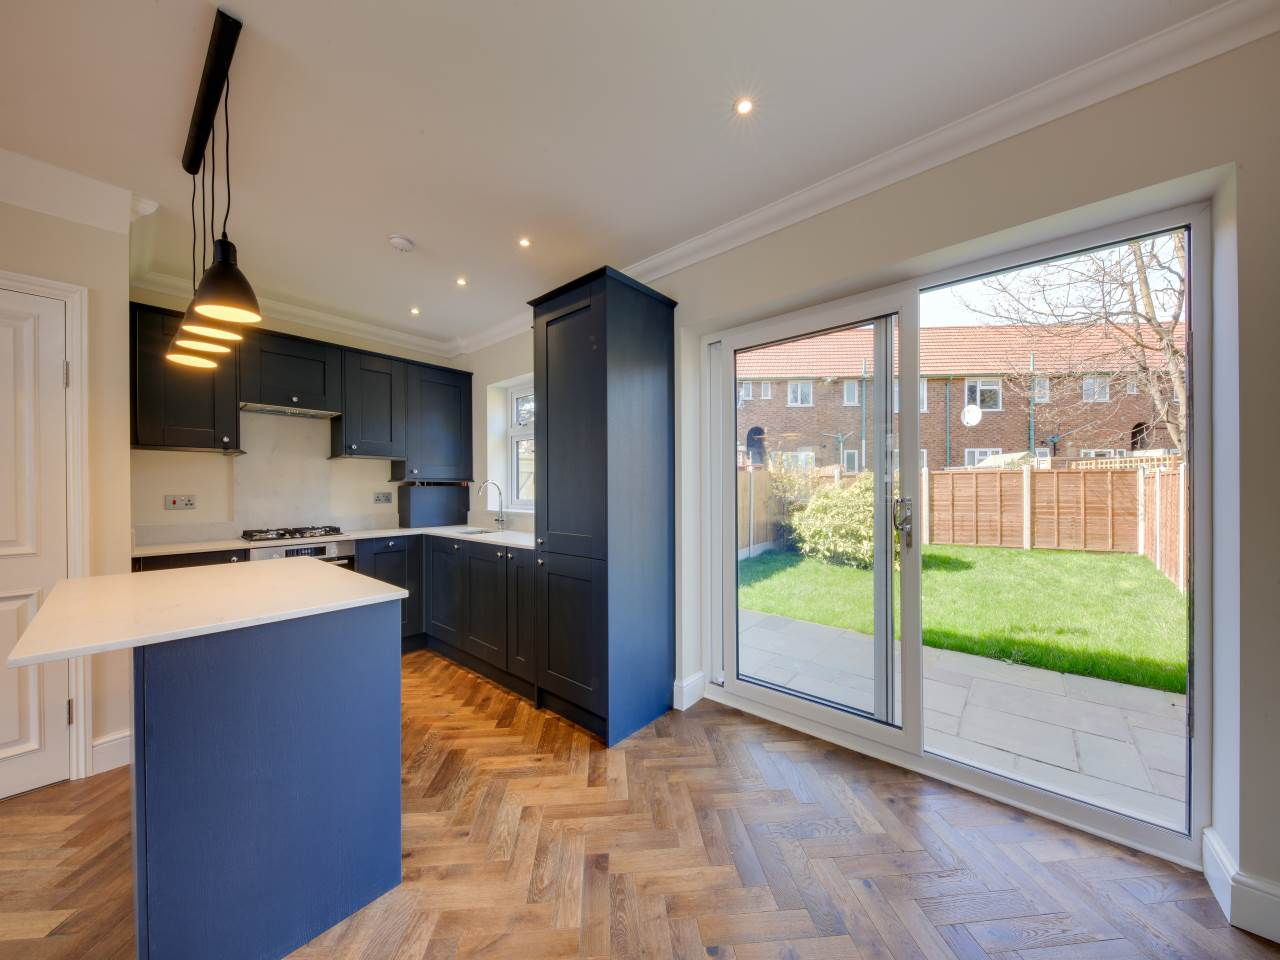 3 bed house for sale in Shernhall Street , Walthamstow   - Property Image 6